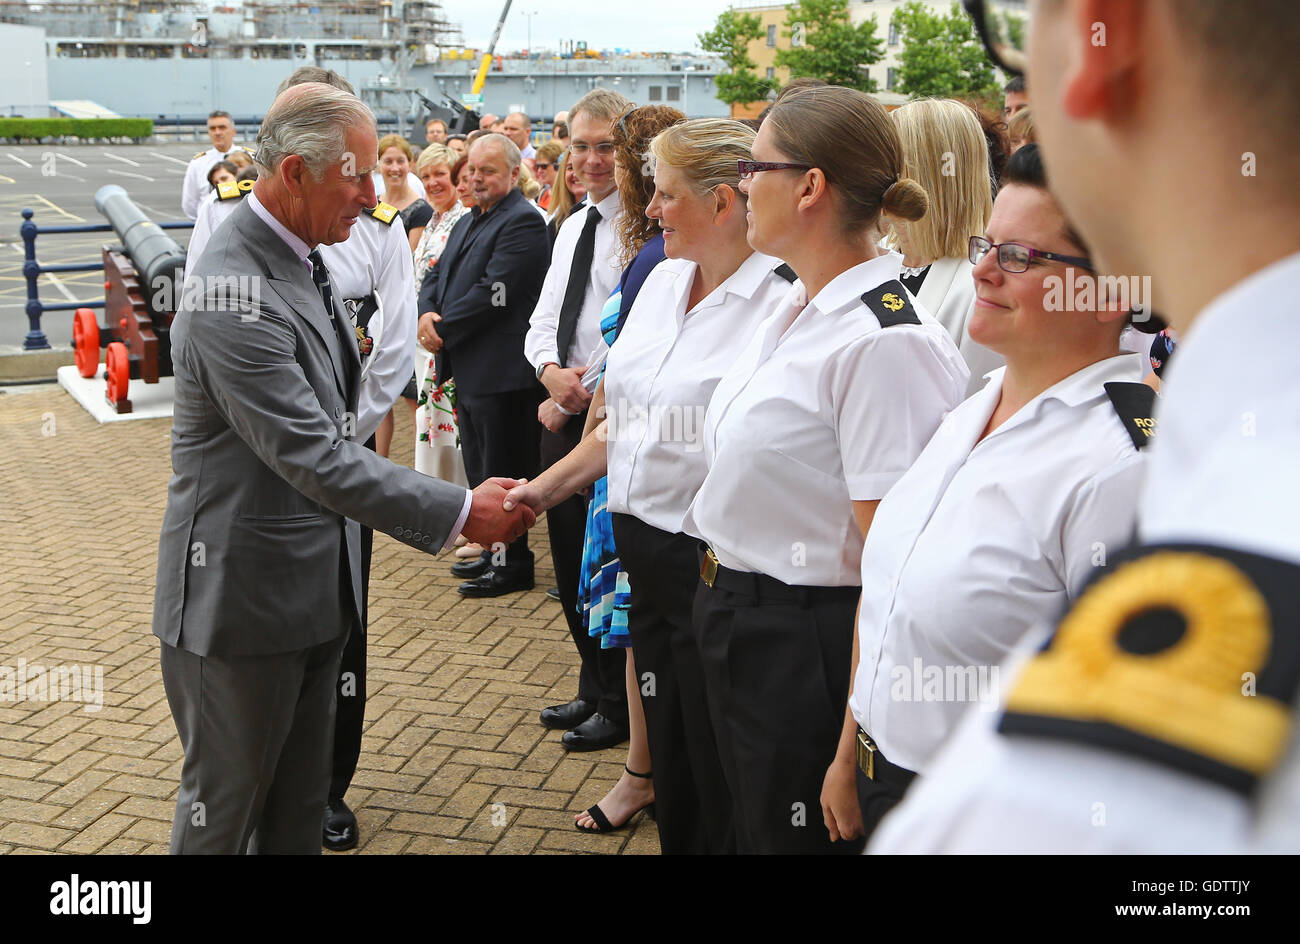 The Prince of Wales, Admiral of the Fleet, meets naval personnel during a visit to Her Majesty's Naval Base - Stock Image